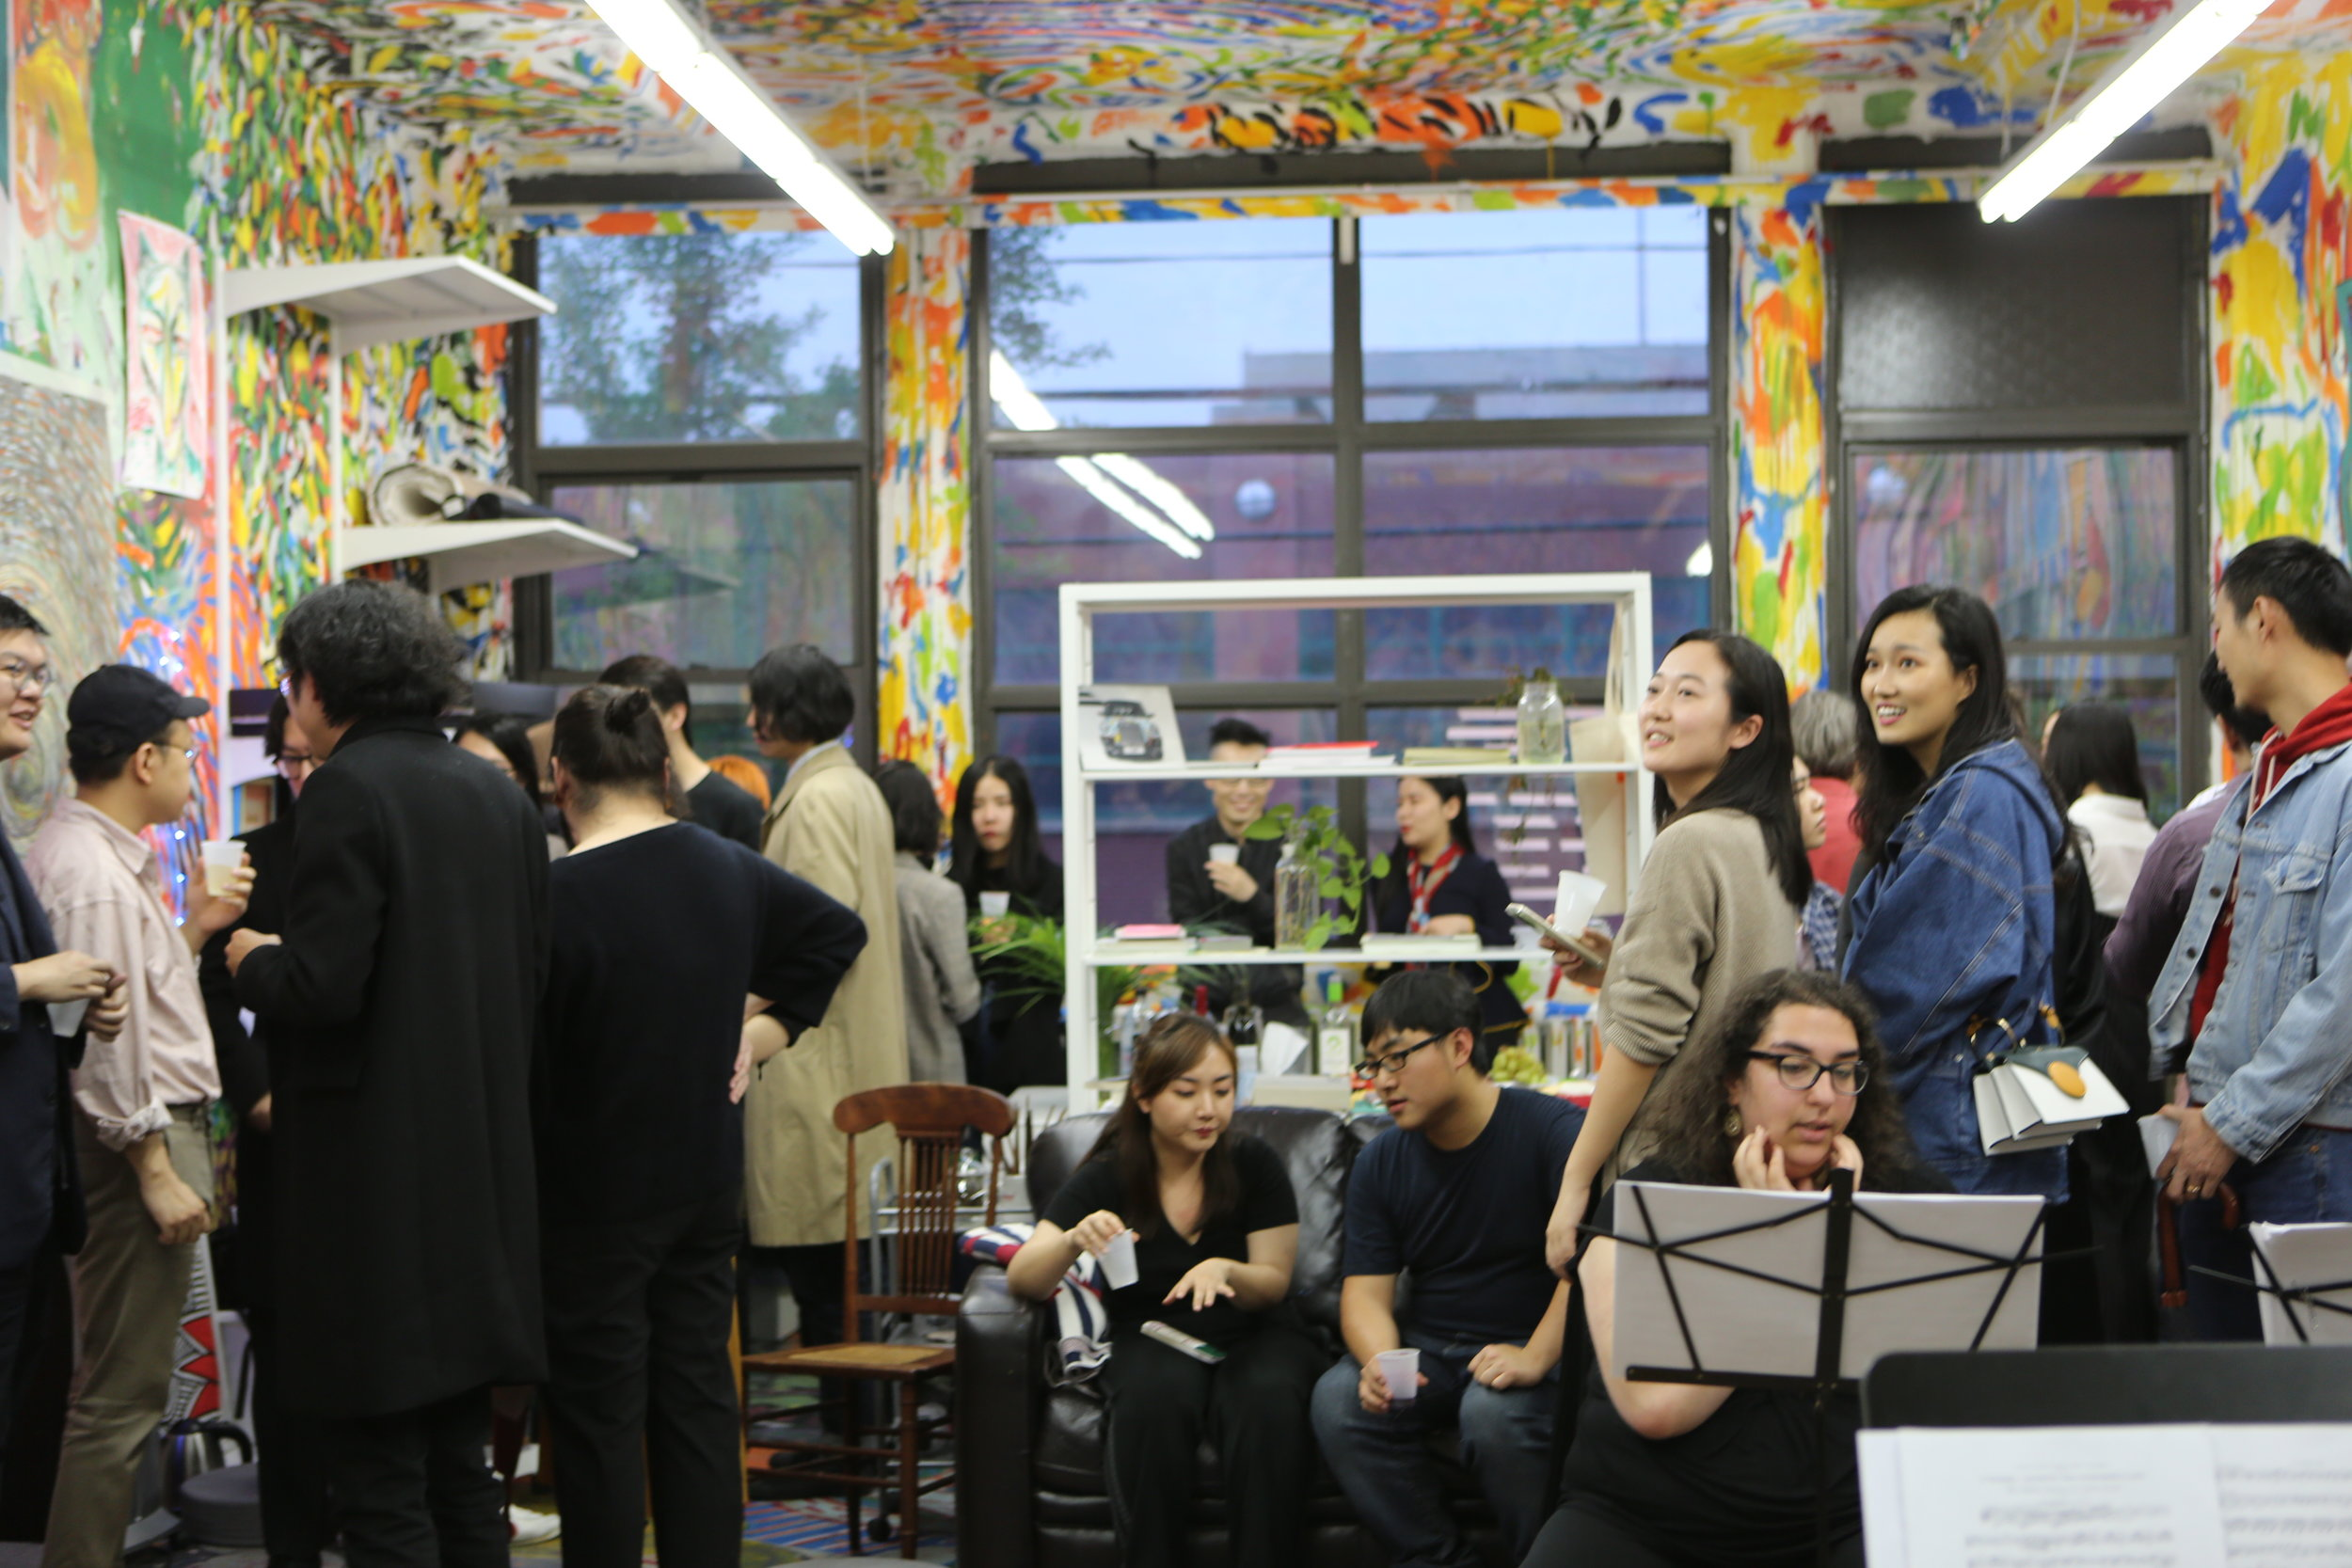 Nevermore - Music Concert  with The Lumisade Quintet at Chen Dongfan Studio. Photograph by Inna Xu.  昨夜星辰昨夜风 - 木管五重奏音乐会@陈栋帆工作室,摄影:徐益英.